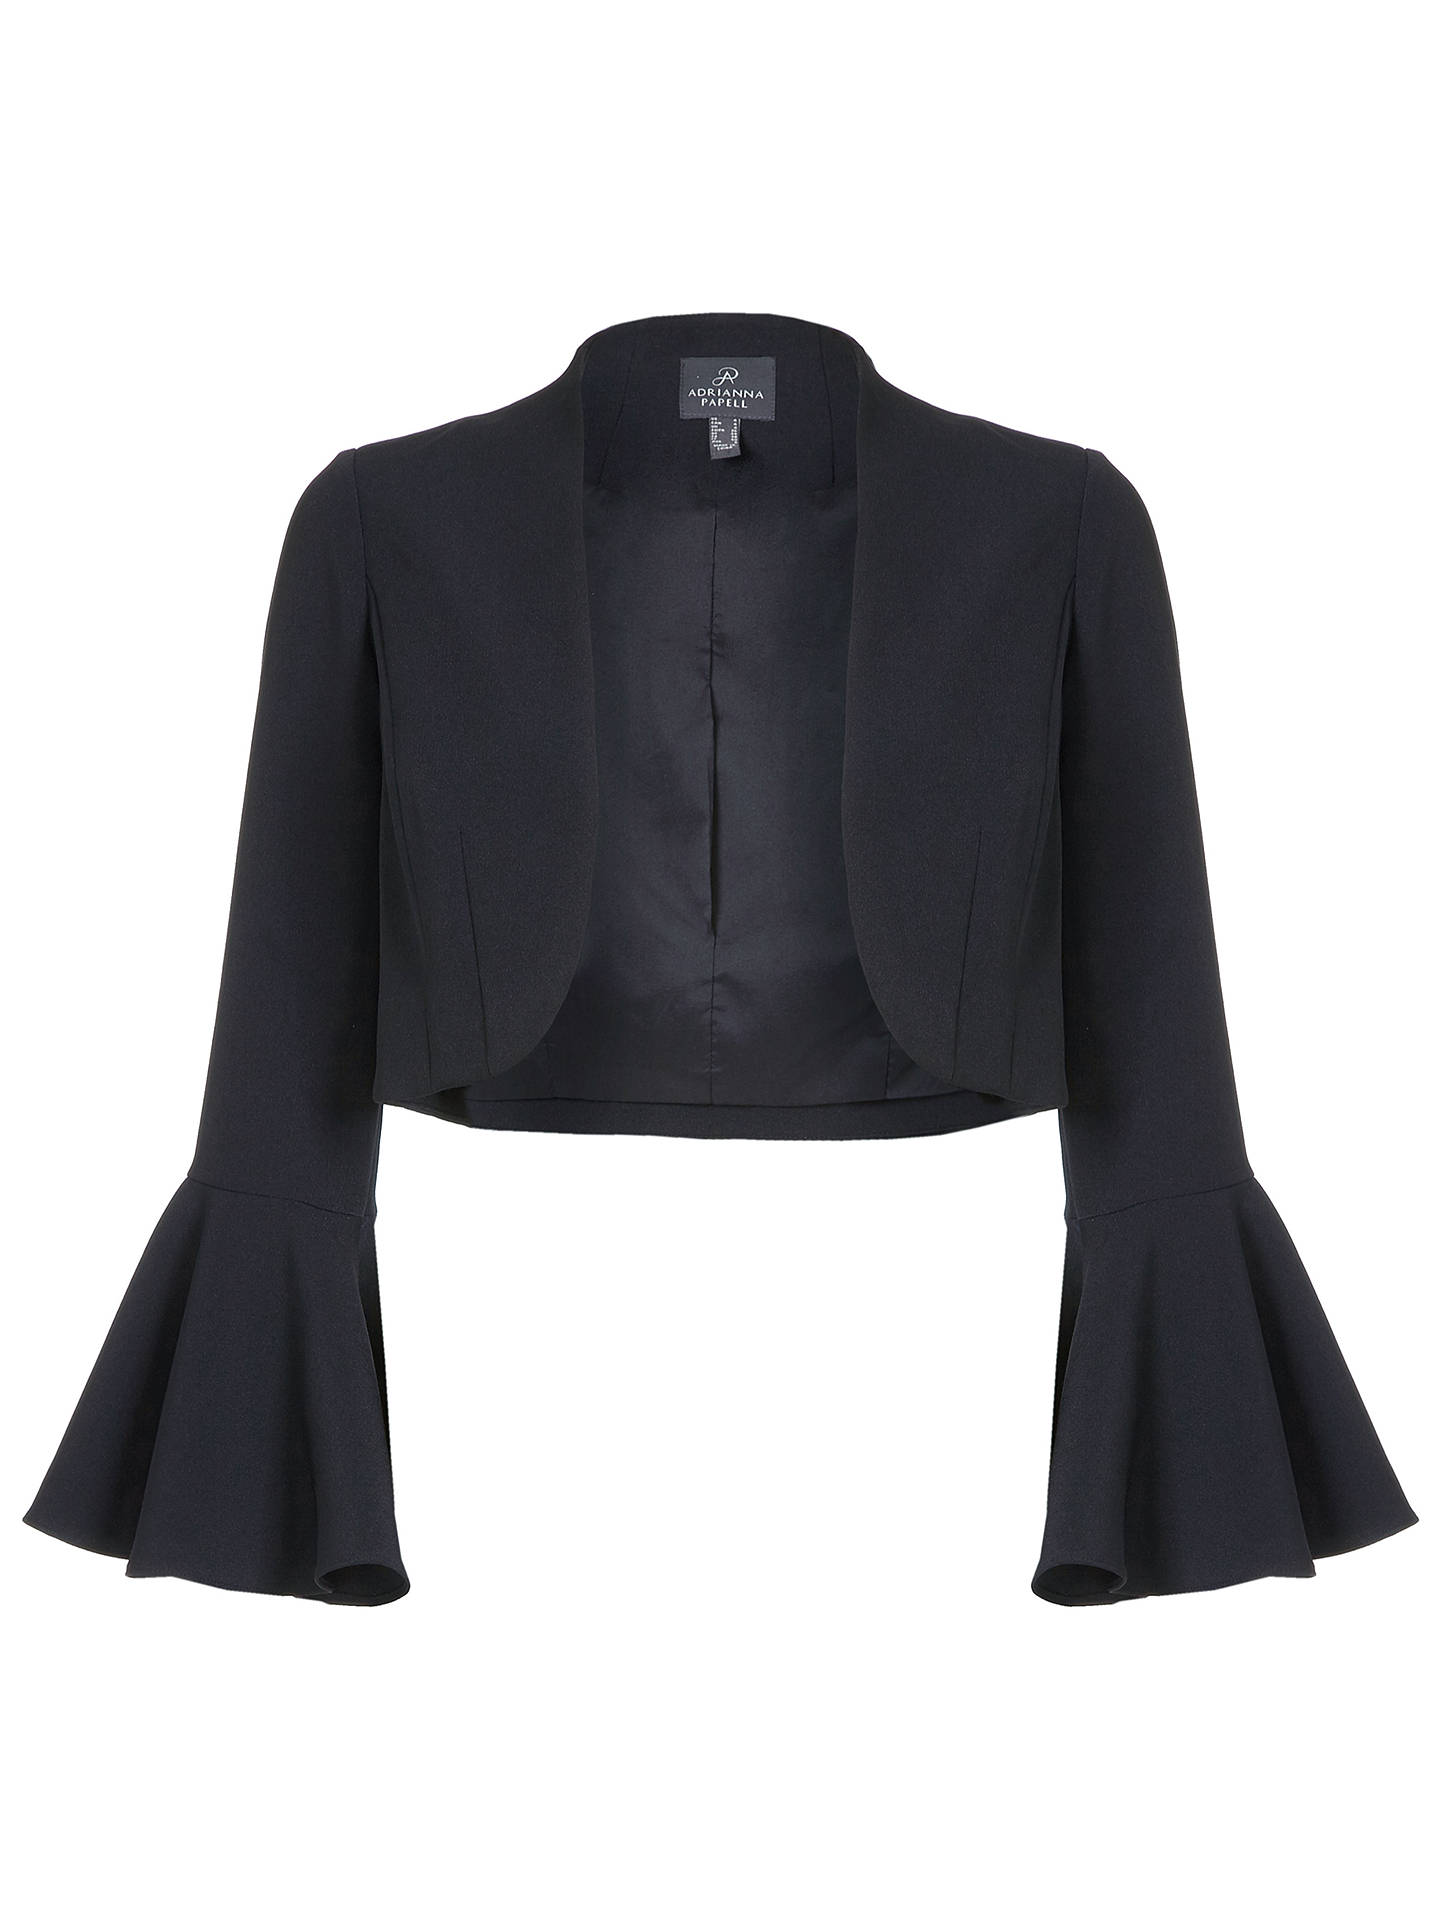 Buy Adrianna Papell Crepe Bell Sleeve Bolero, Black, 8 Online at johnlewis.com